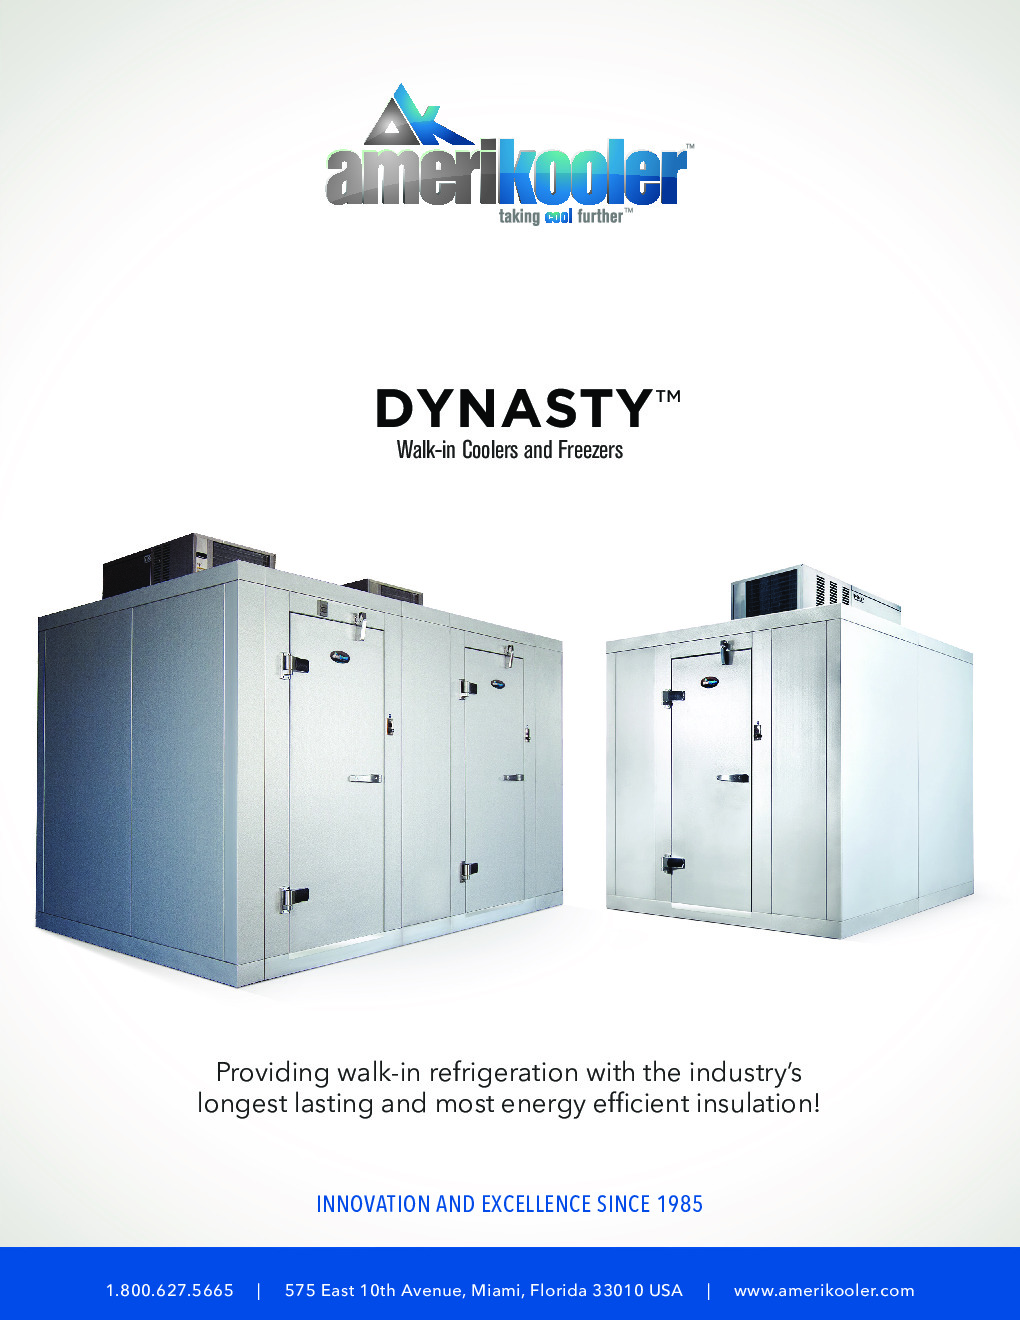 AmeriKooler DW081777N-6/11-RM 8' X 17' Walk-In Cooler, 11' L Cooler without Floor and 6' L Freezer, Remote